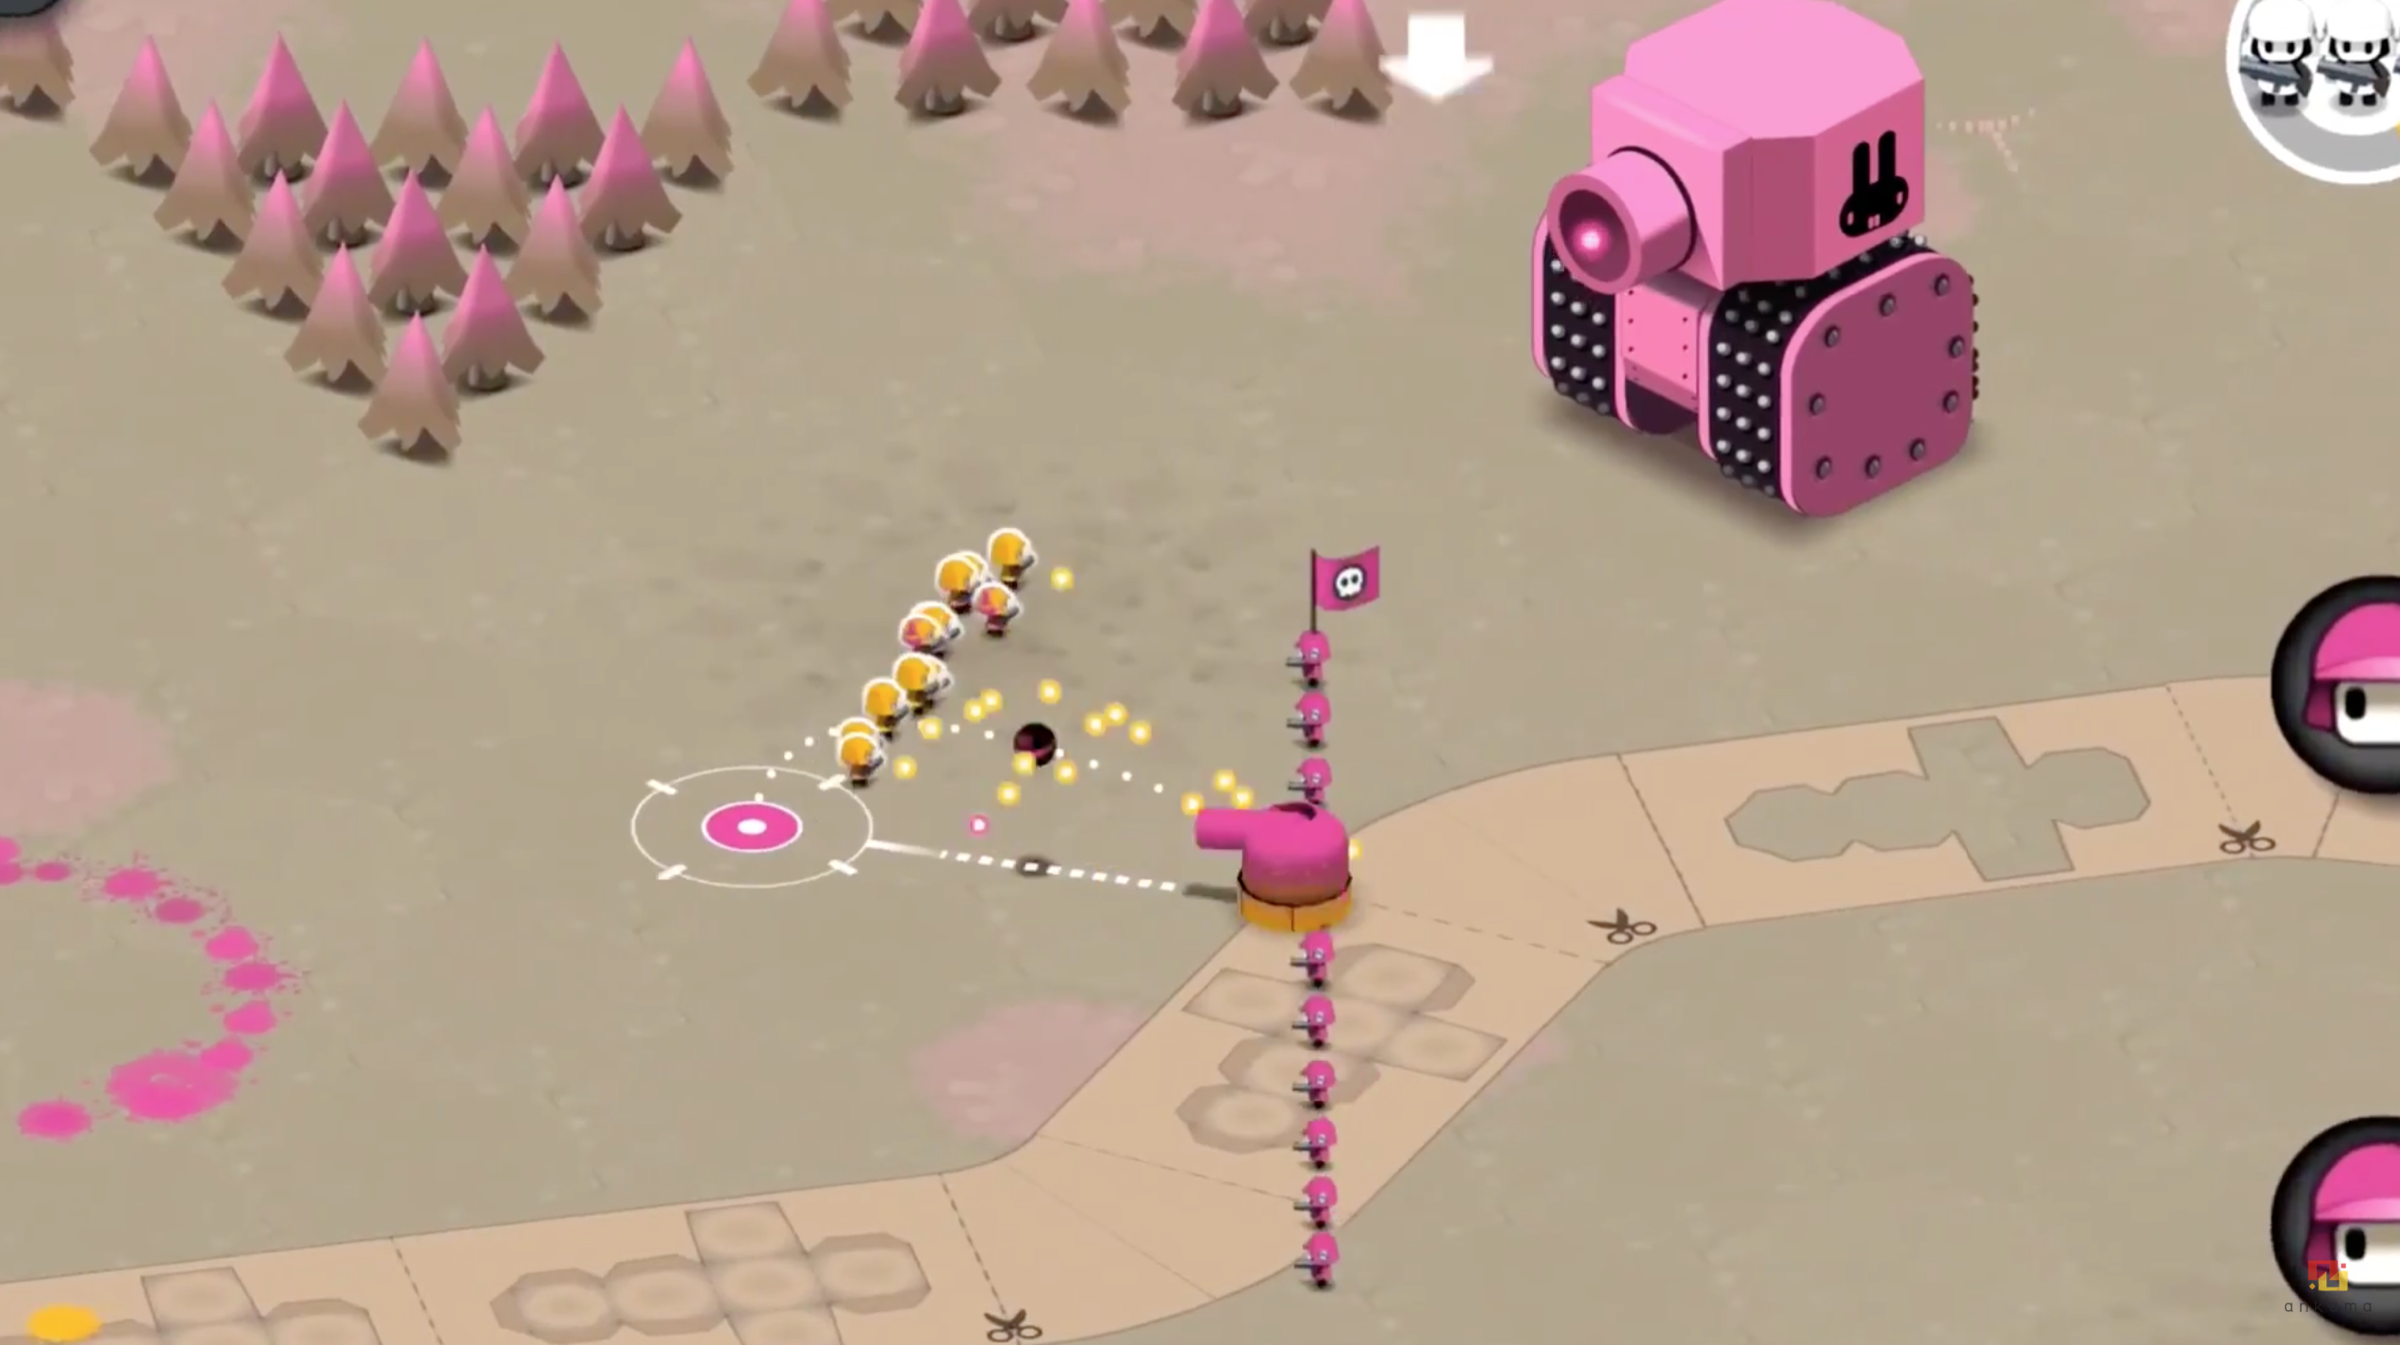 Tactile Wars, a fast-paced war game, soft-launches on iOS